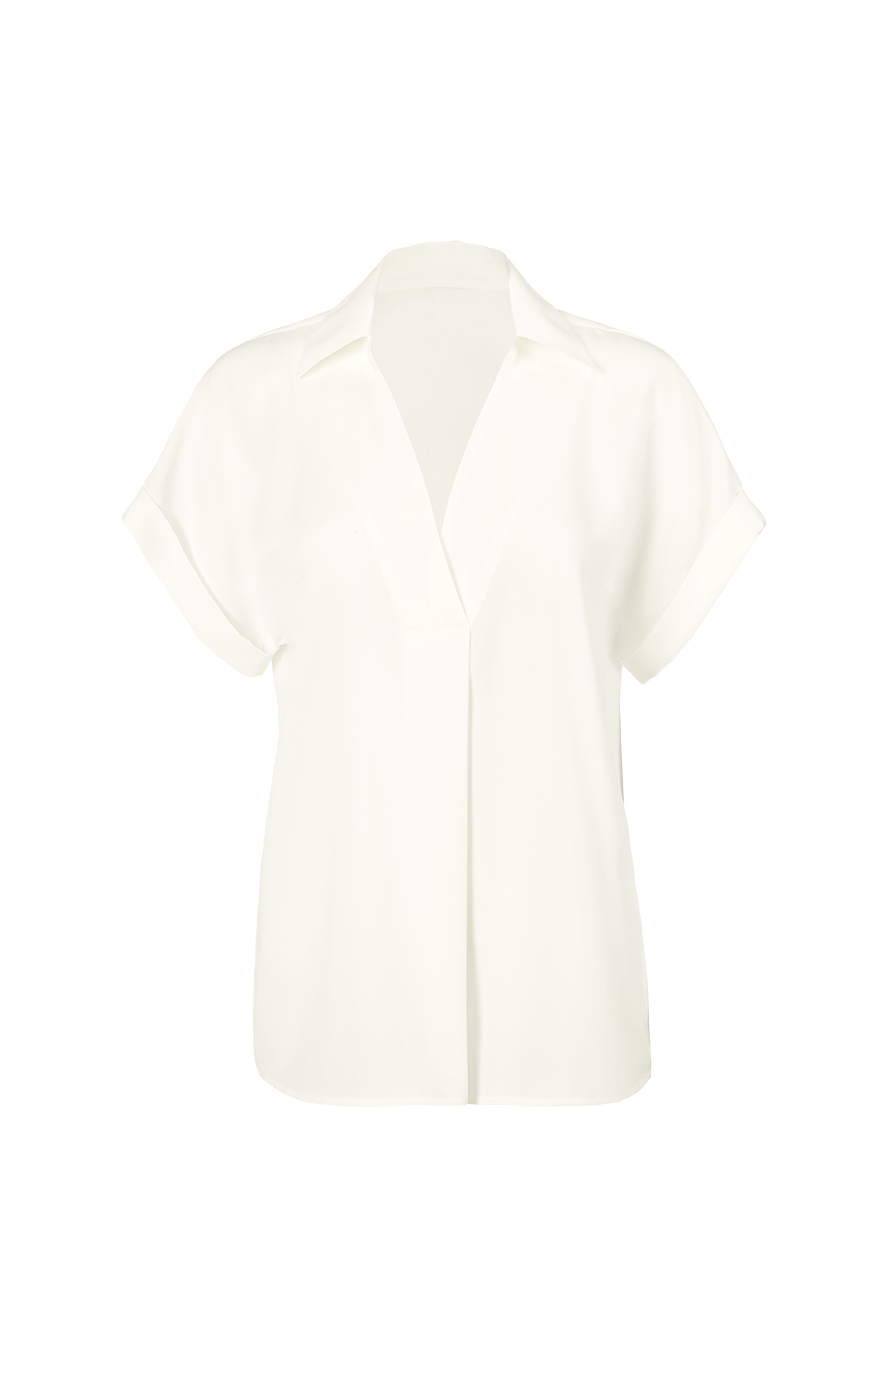 Replay Top in White Front